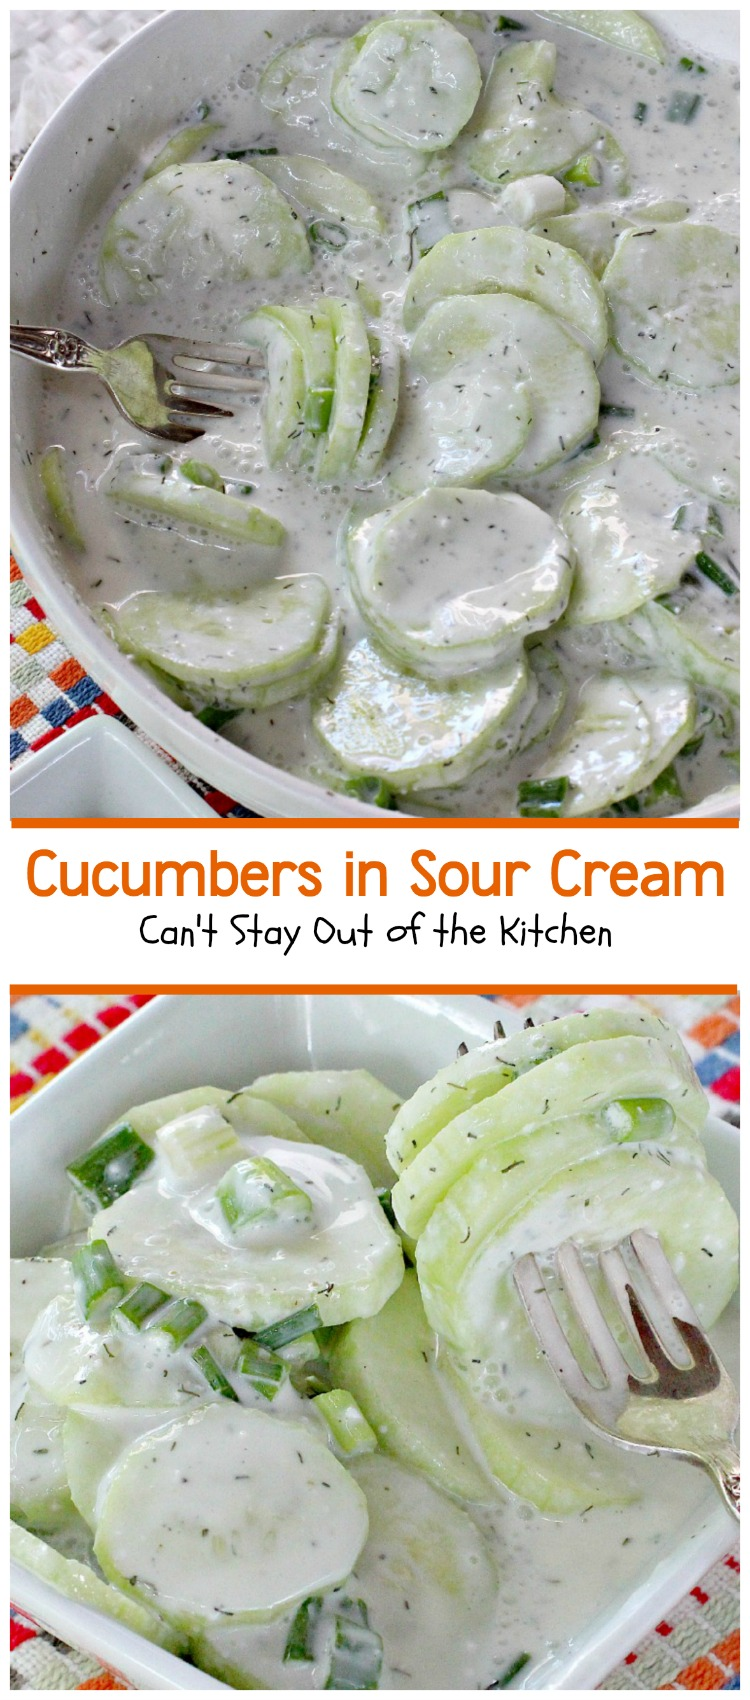 Cucumbers in Sour Cream | Can't Stay Out of the Kitchen | quick and ...